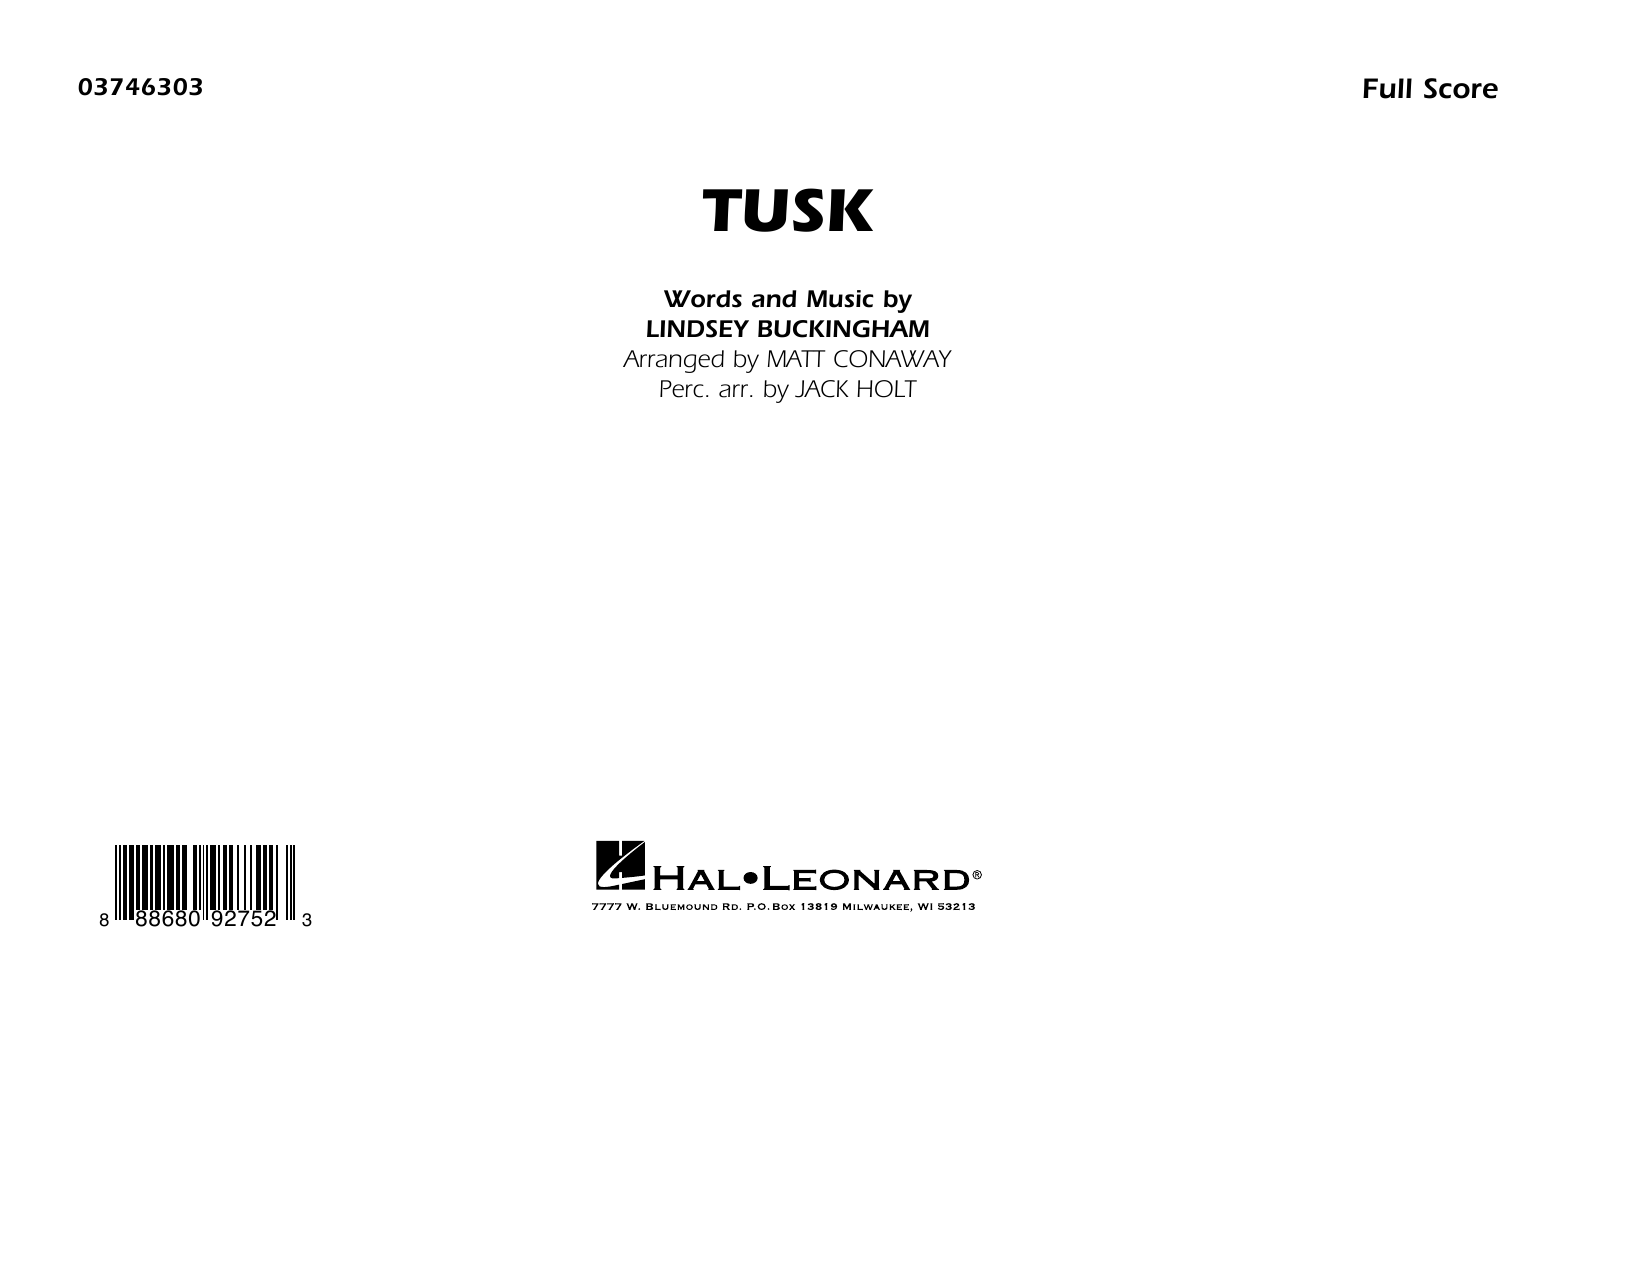 Fleetwood Mac Tusk (arr. Matt Conaway) - Conductor Score (Full Score) sheet music preview music notes and score for Marching Band including 7 page(s)